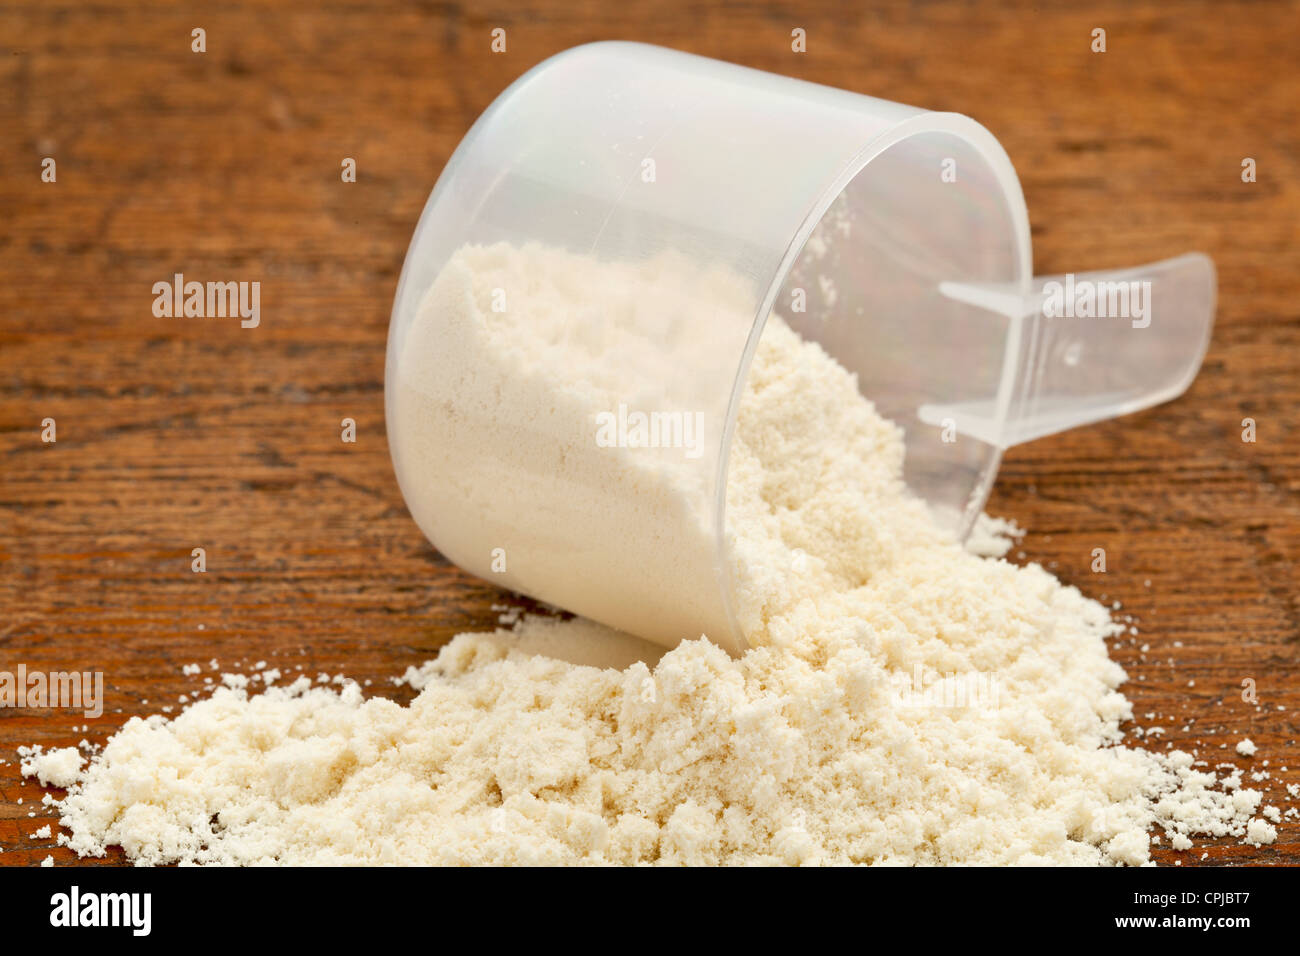 plastic measuring scoop of white powder (whey protein) against grunge wood background - Stock Image